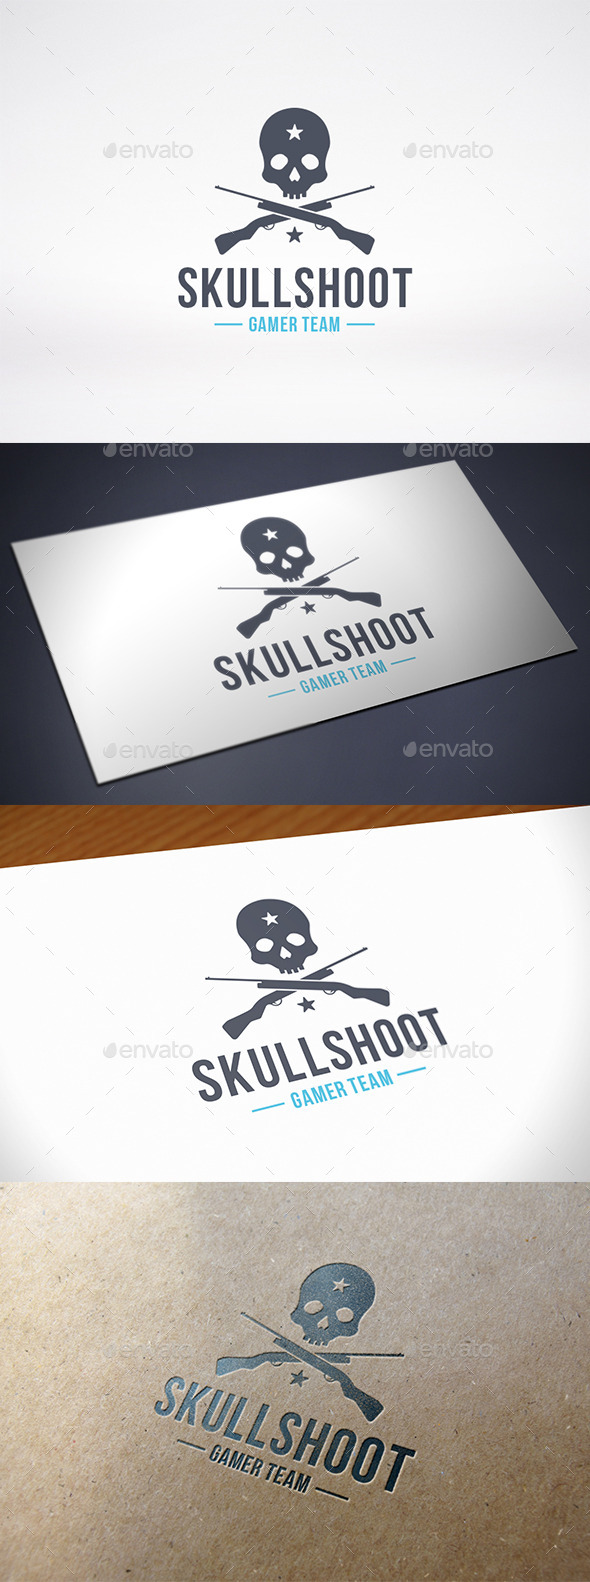 Shooter Game Team Logo Template - Crests Logo Templates